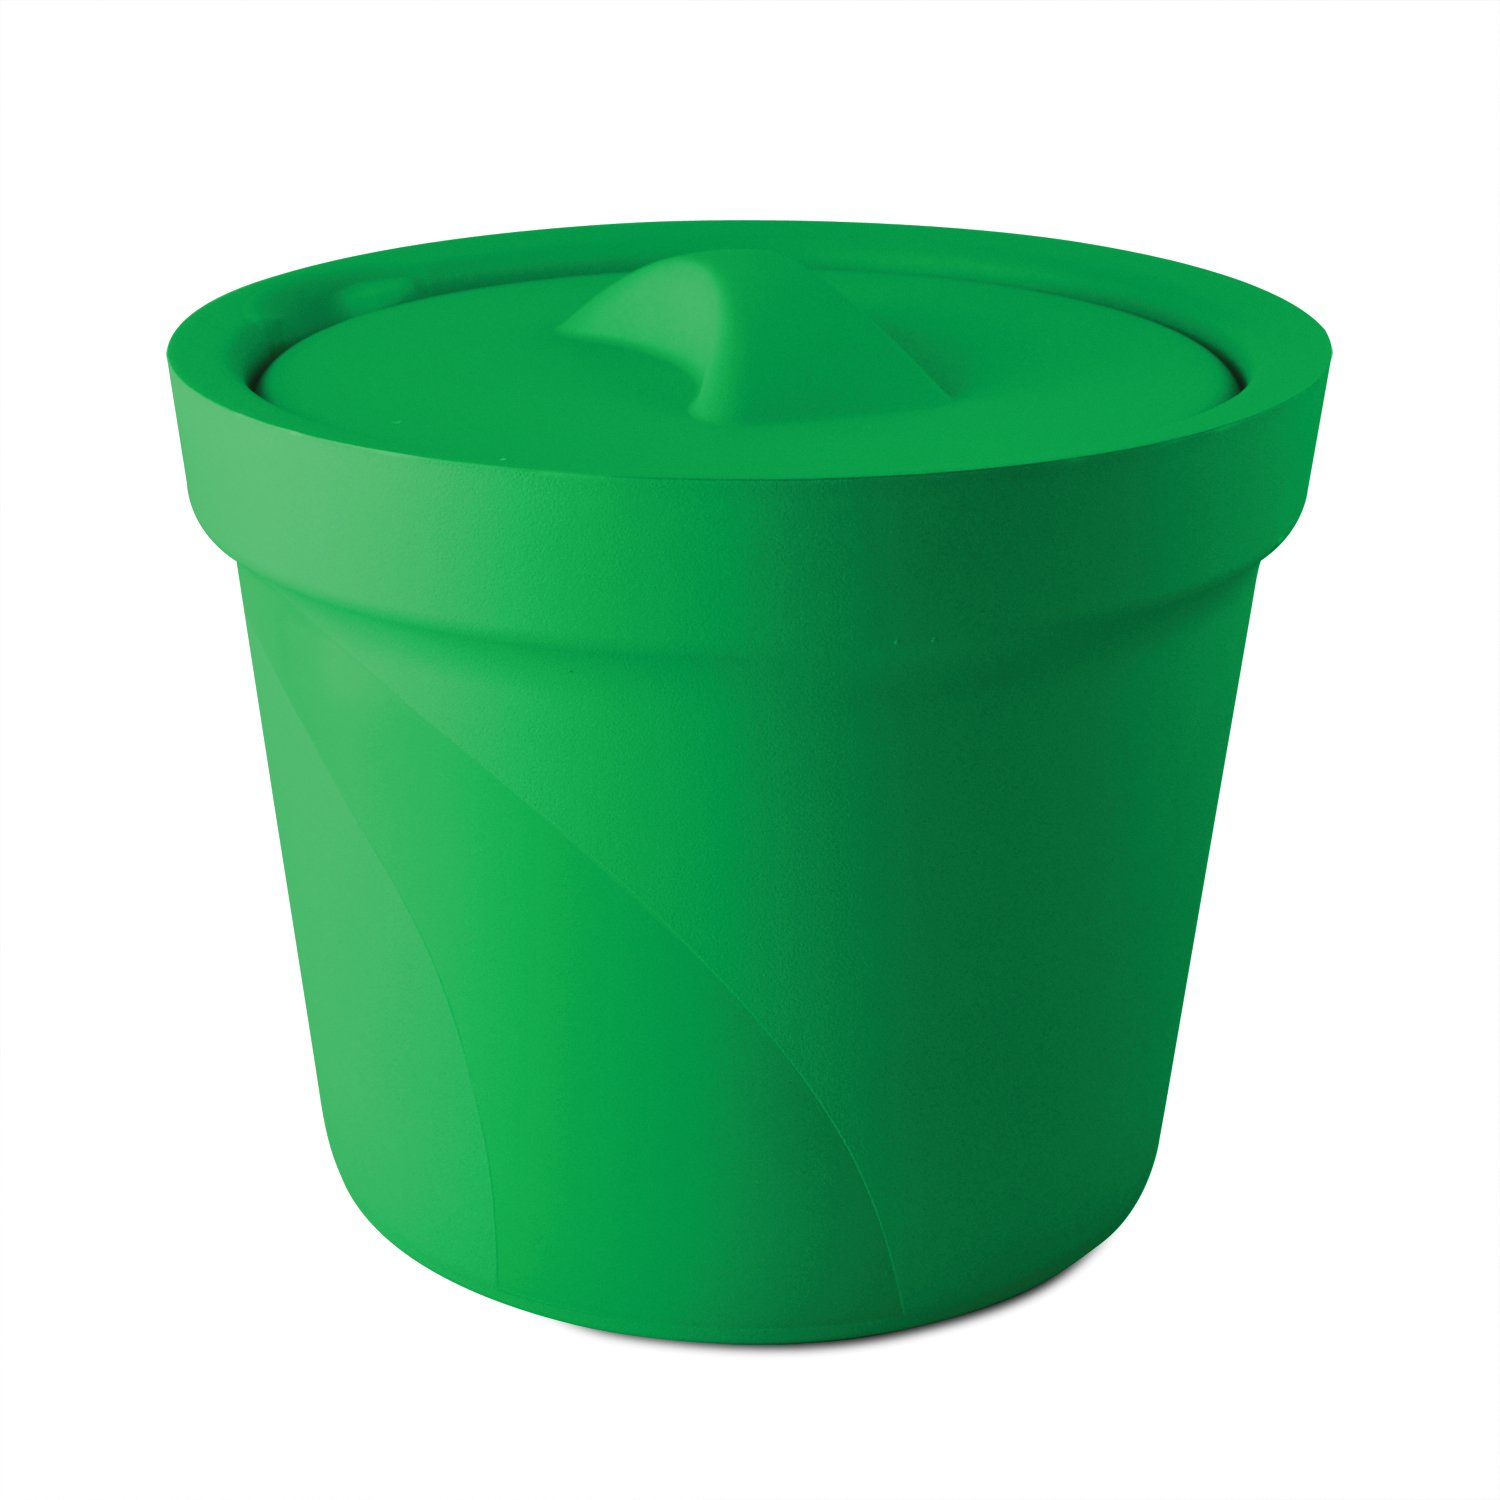 Bel-Art Magic Touch 2 High Performance Green Ice Bucket; 4.0 Liter, With Lid (M16807-4004)